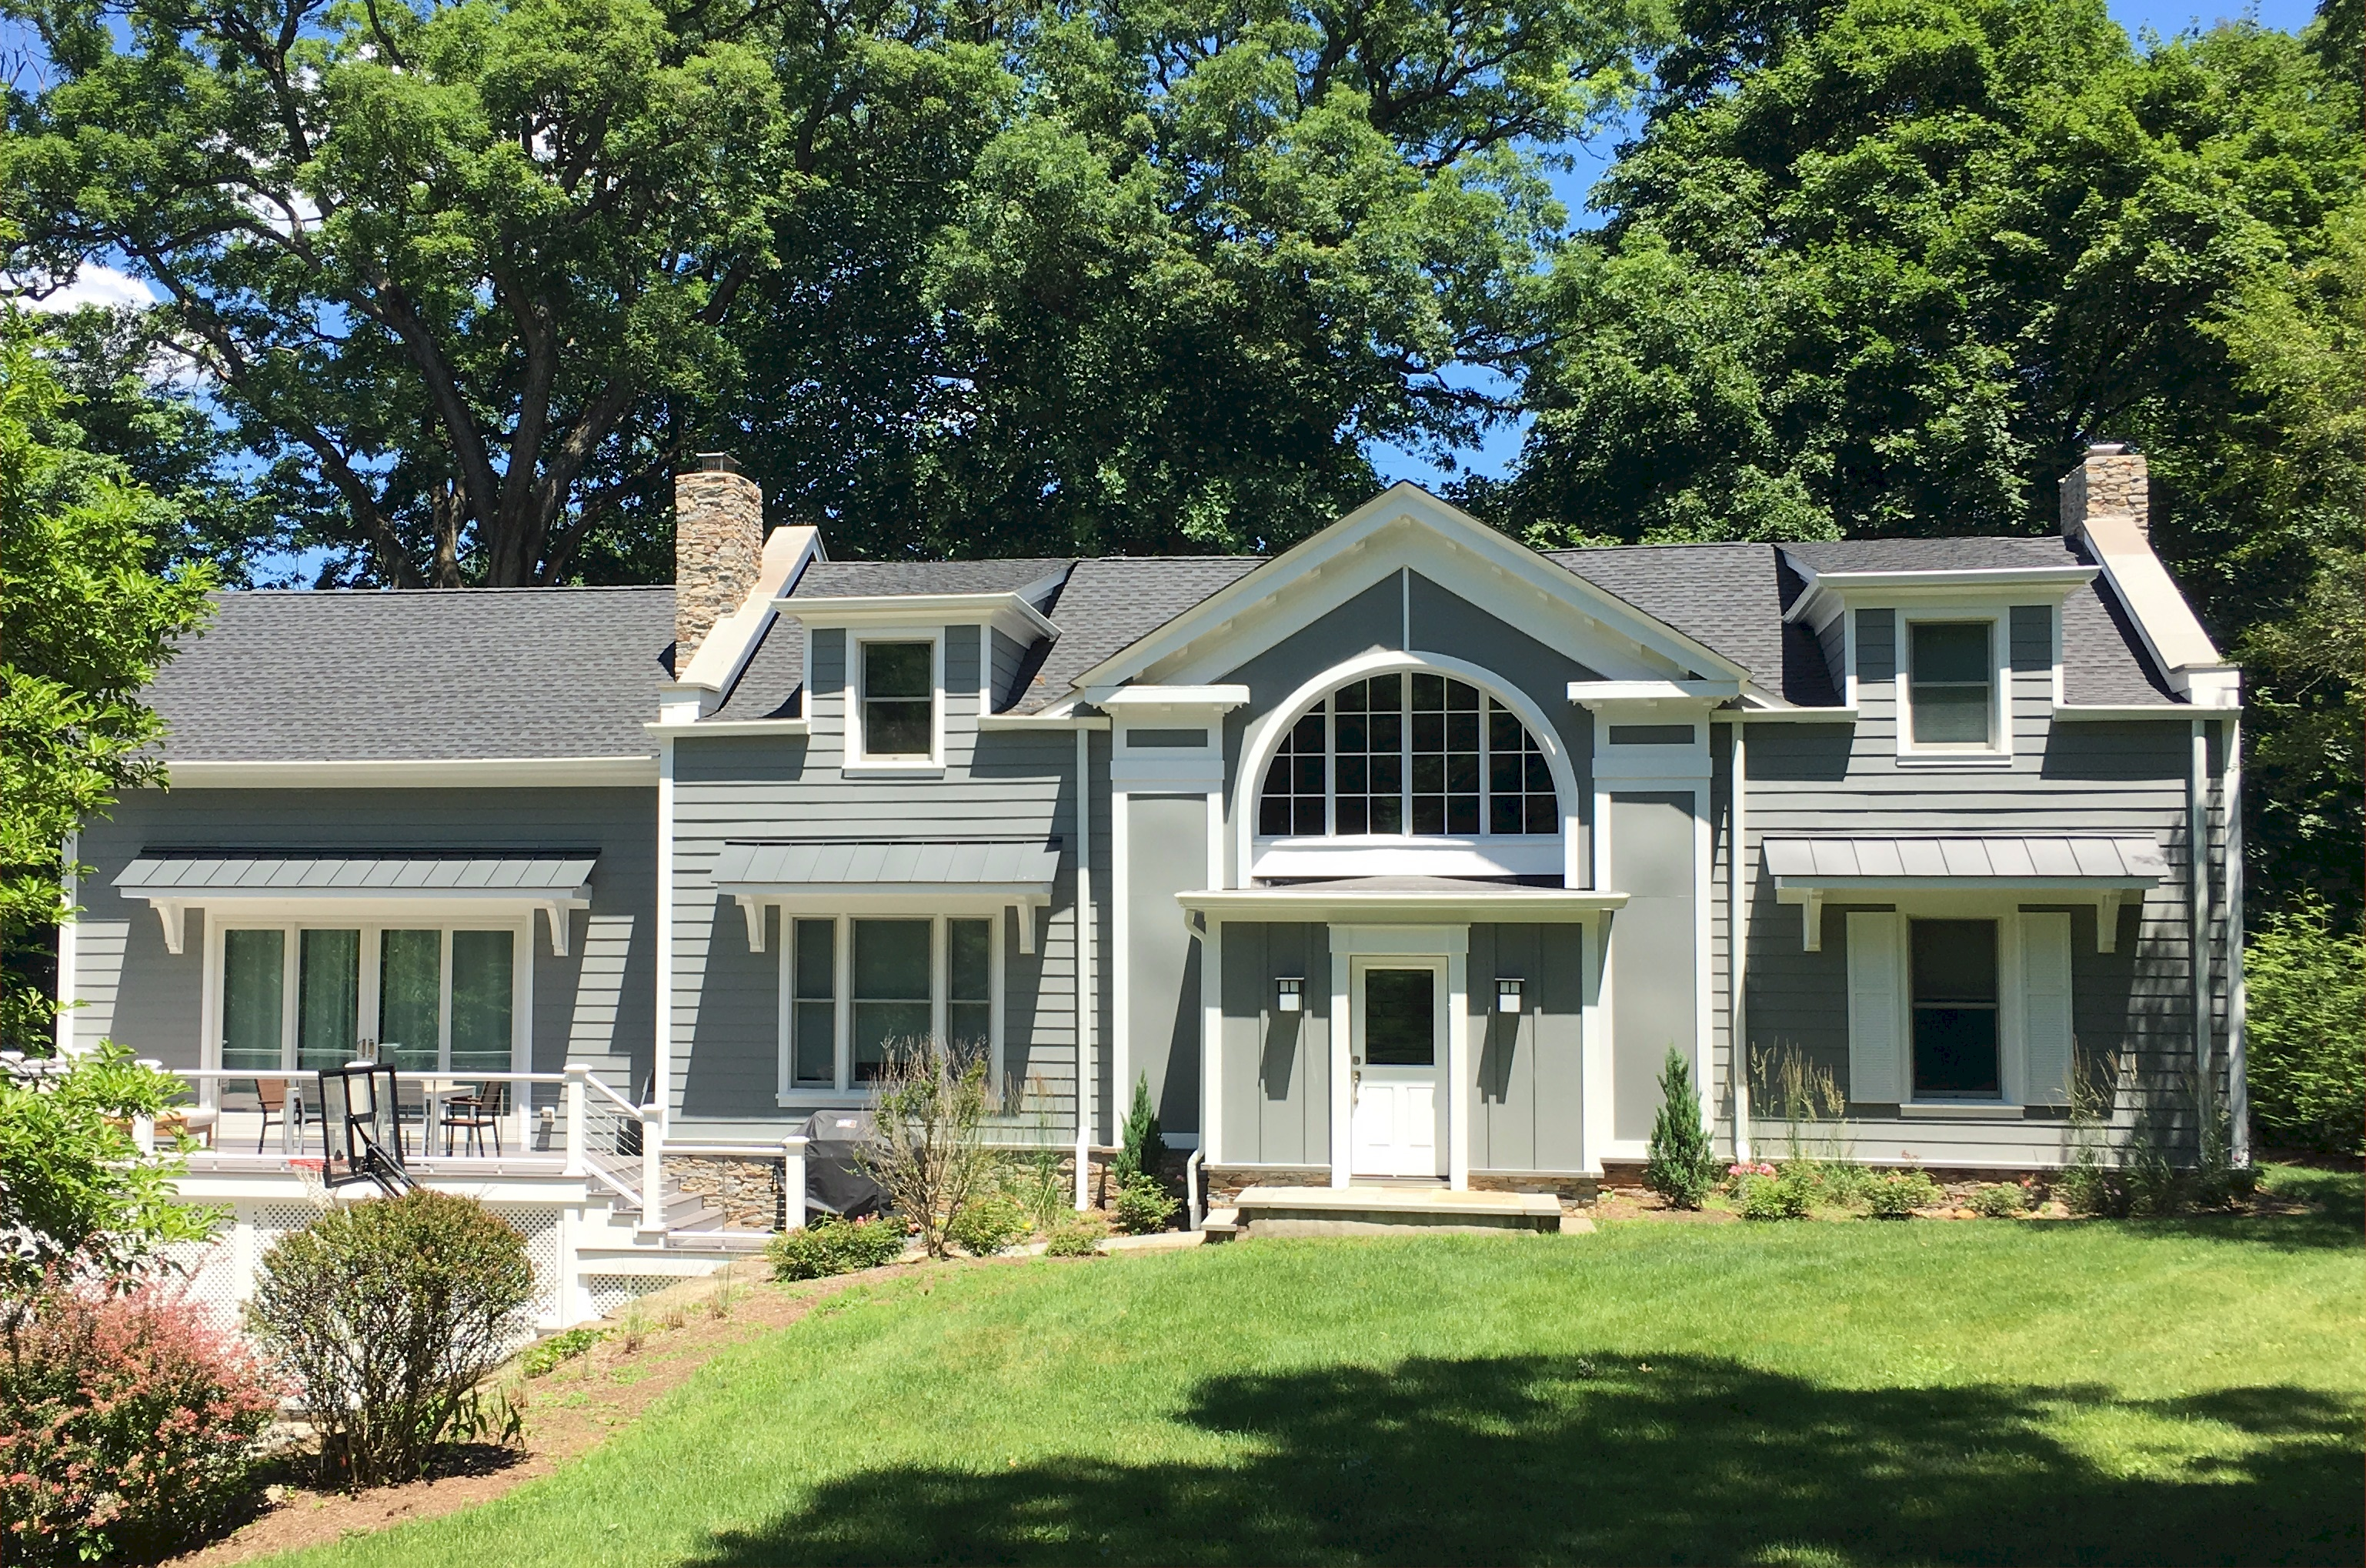 Summit, NJ - Estate Carriage House Restored